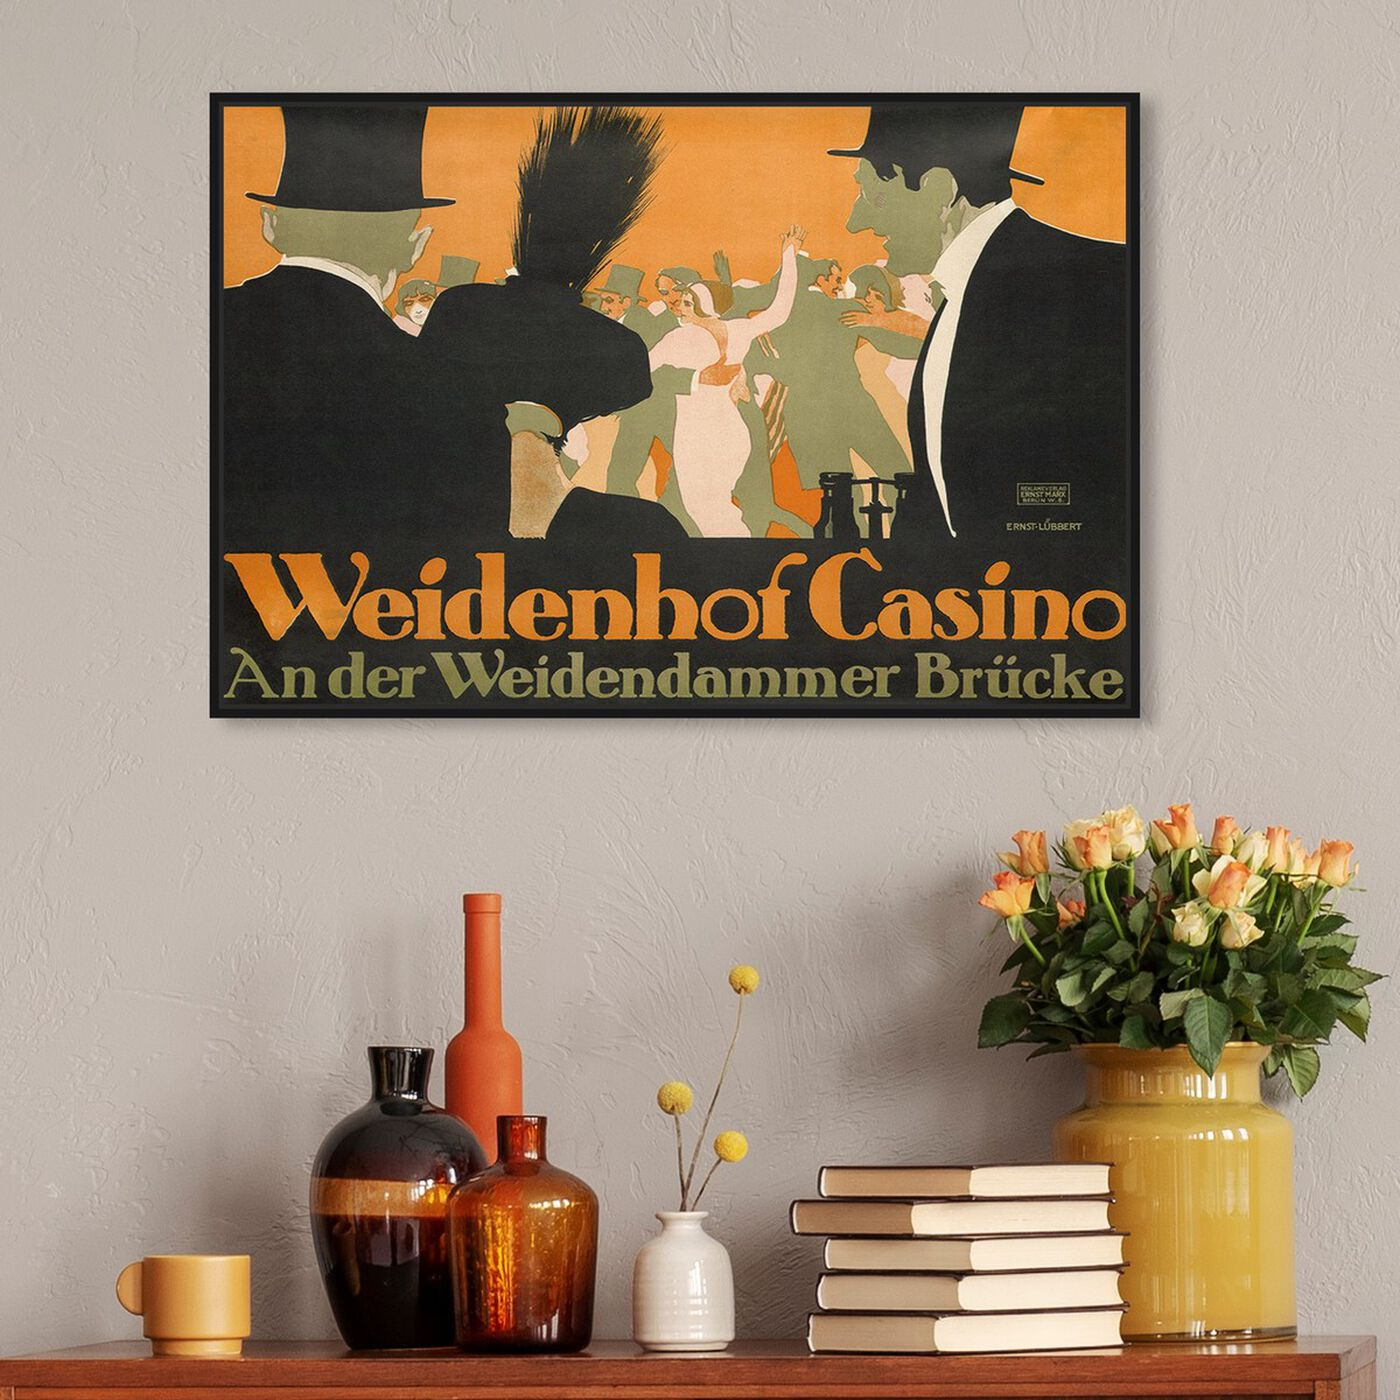 Hanging view of Weidenhof Casino featuring advertising and posters art.